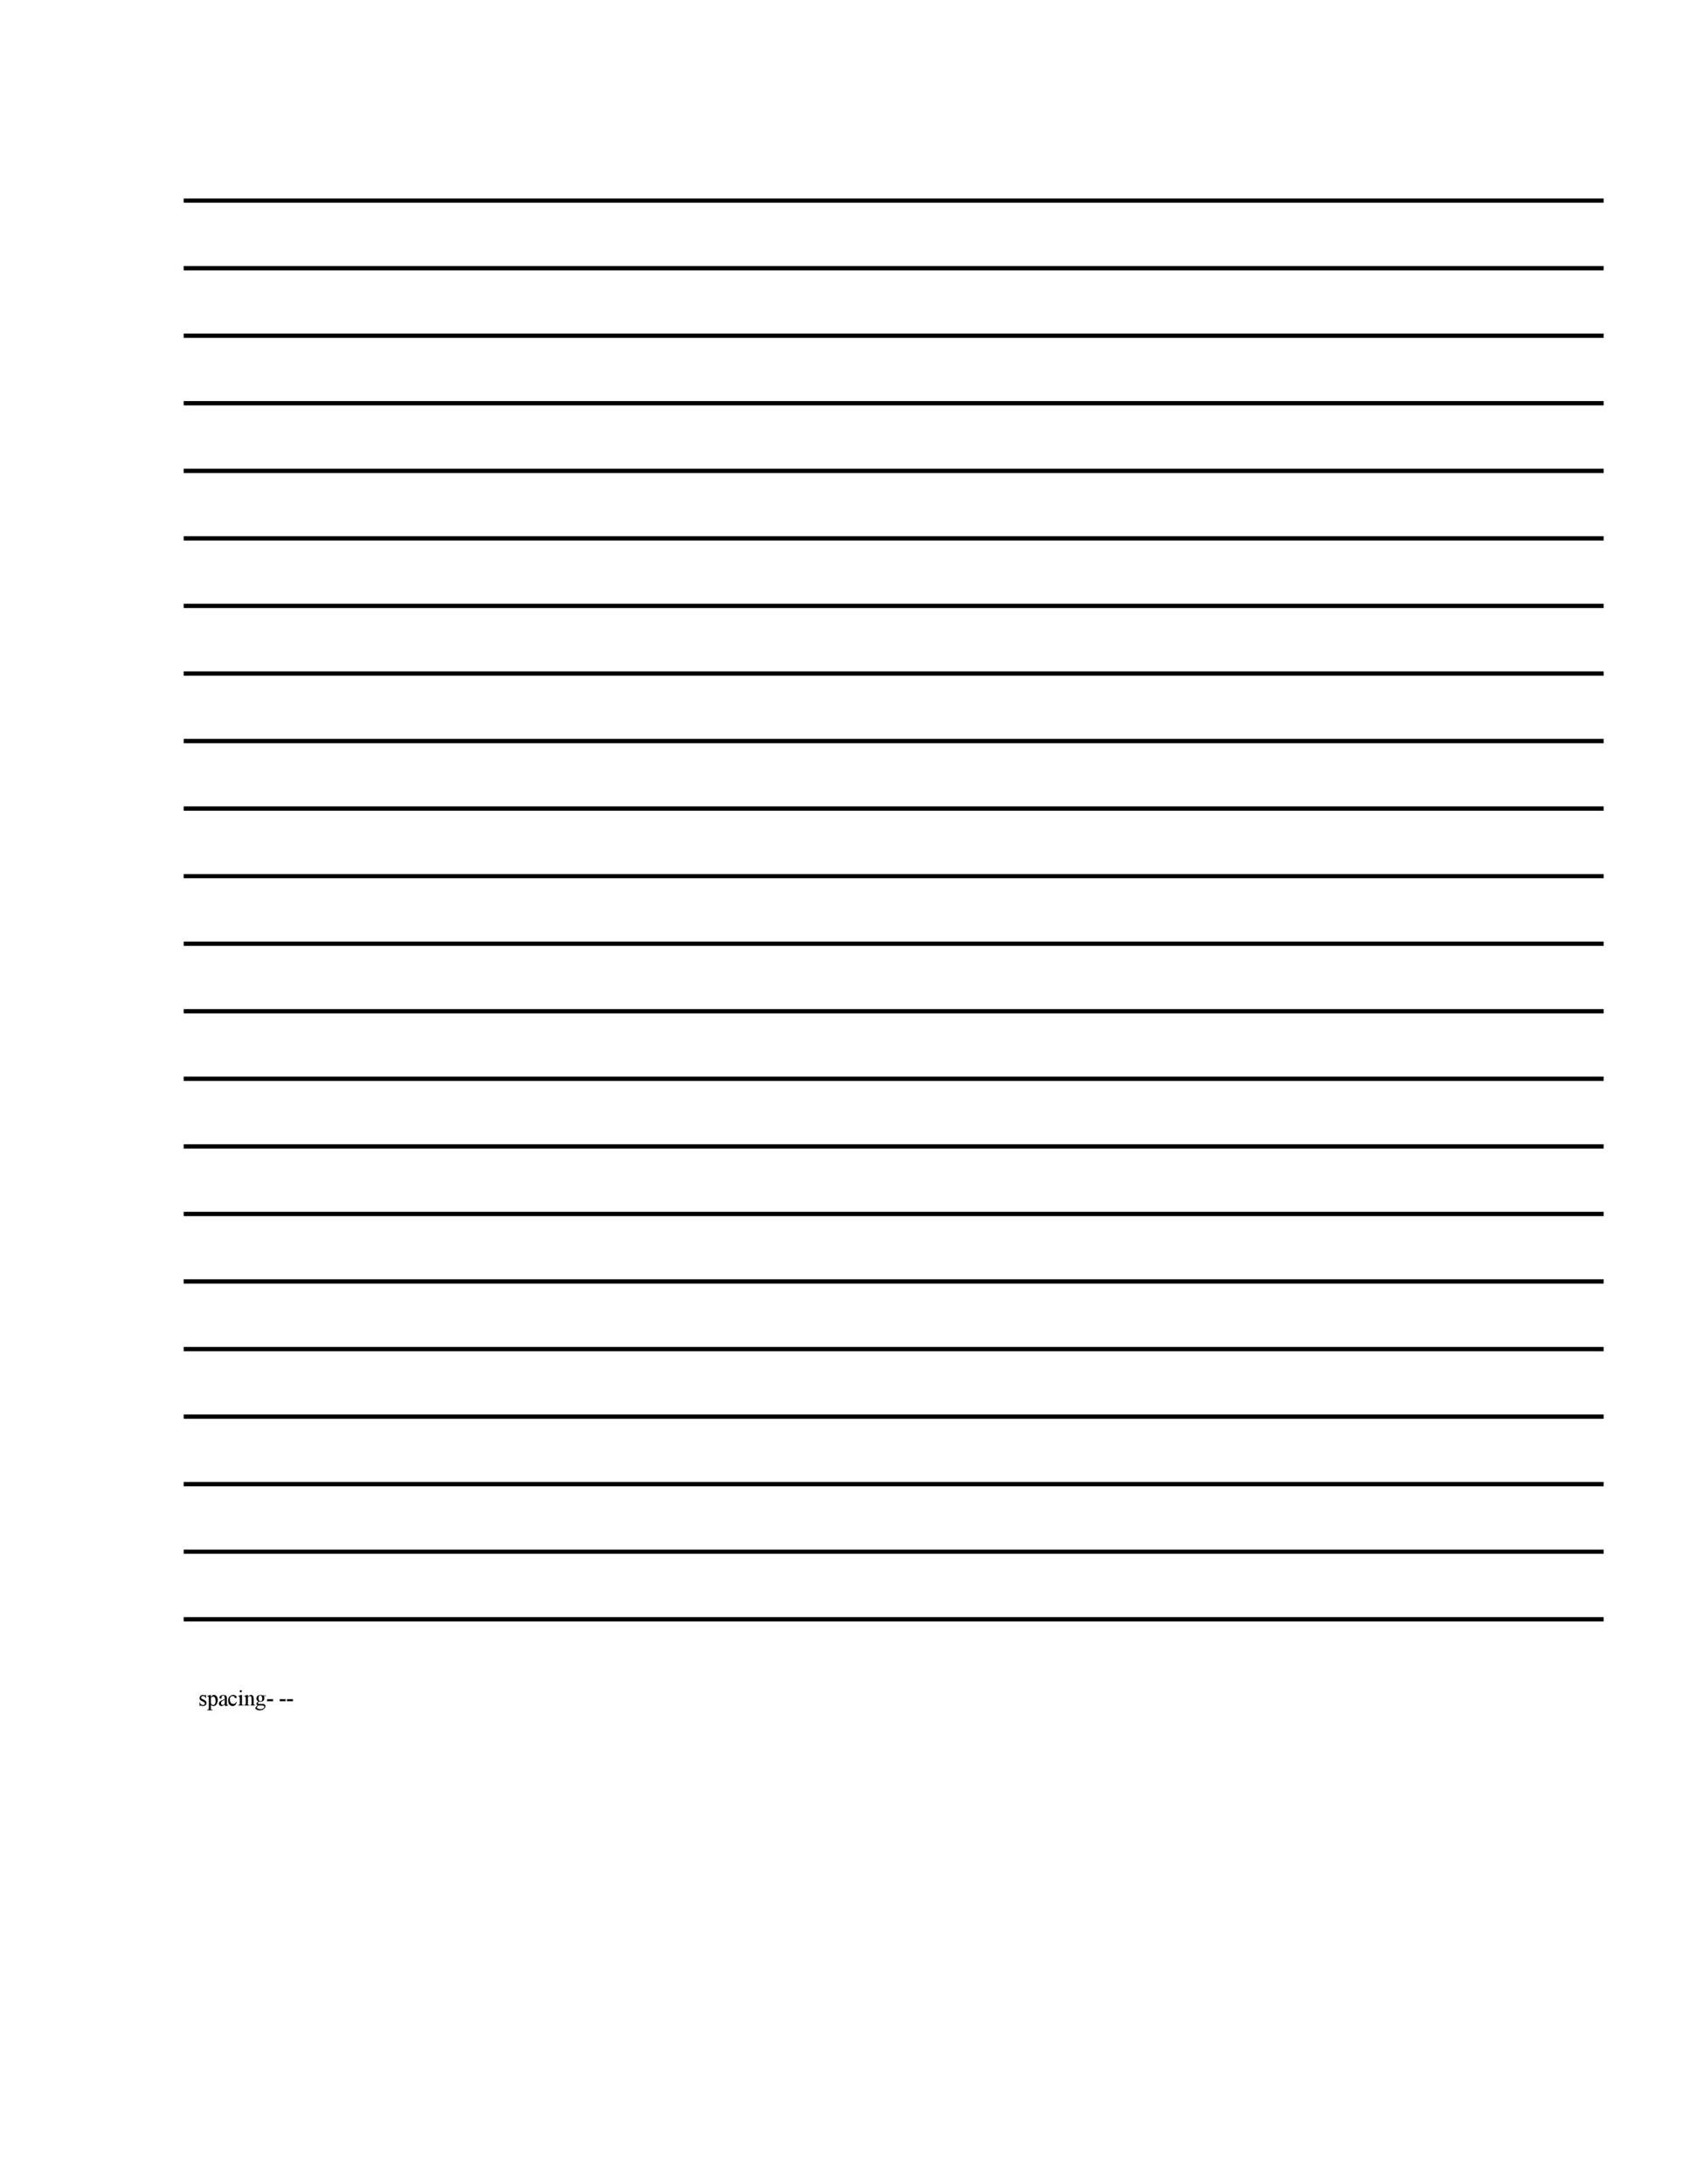 image regarding Lined Paper Printable Pdf named 32 Printable Included Paper Templates ᐅ Template Lab